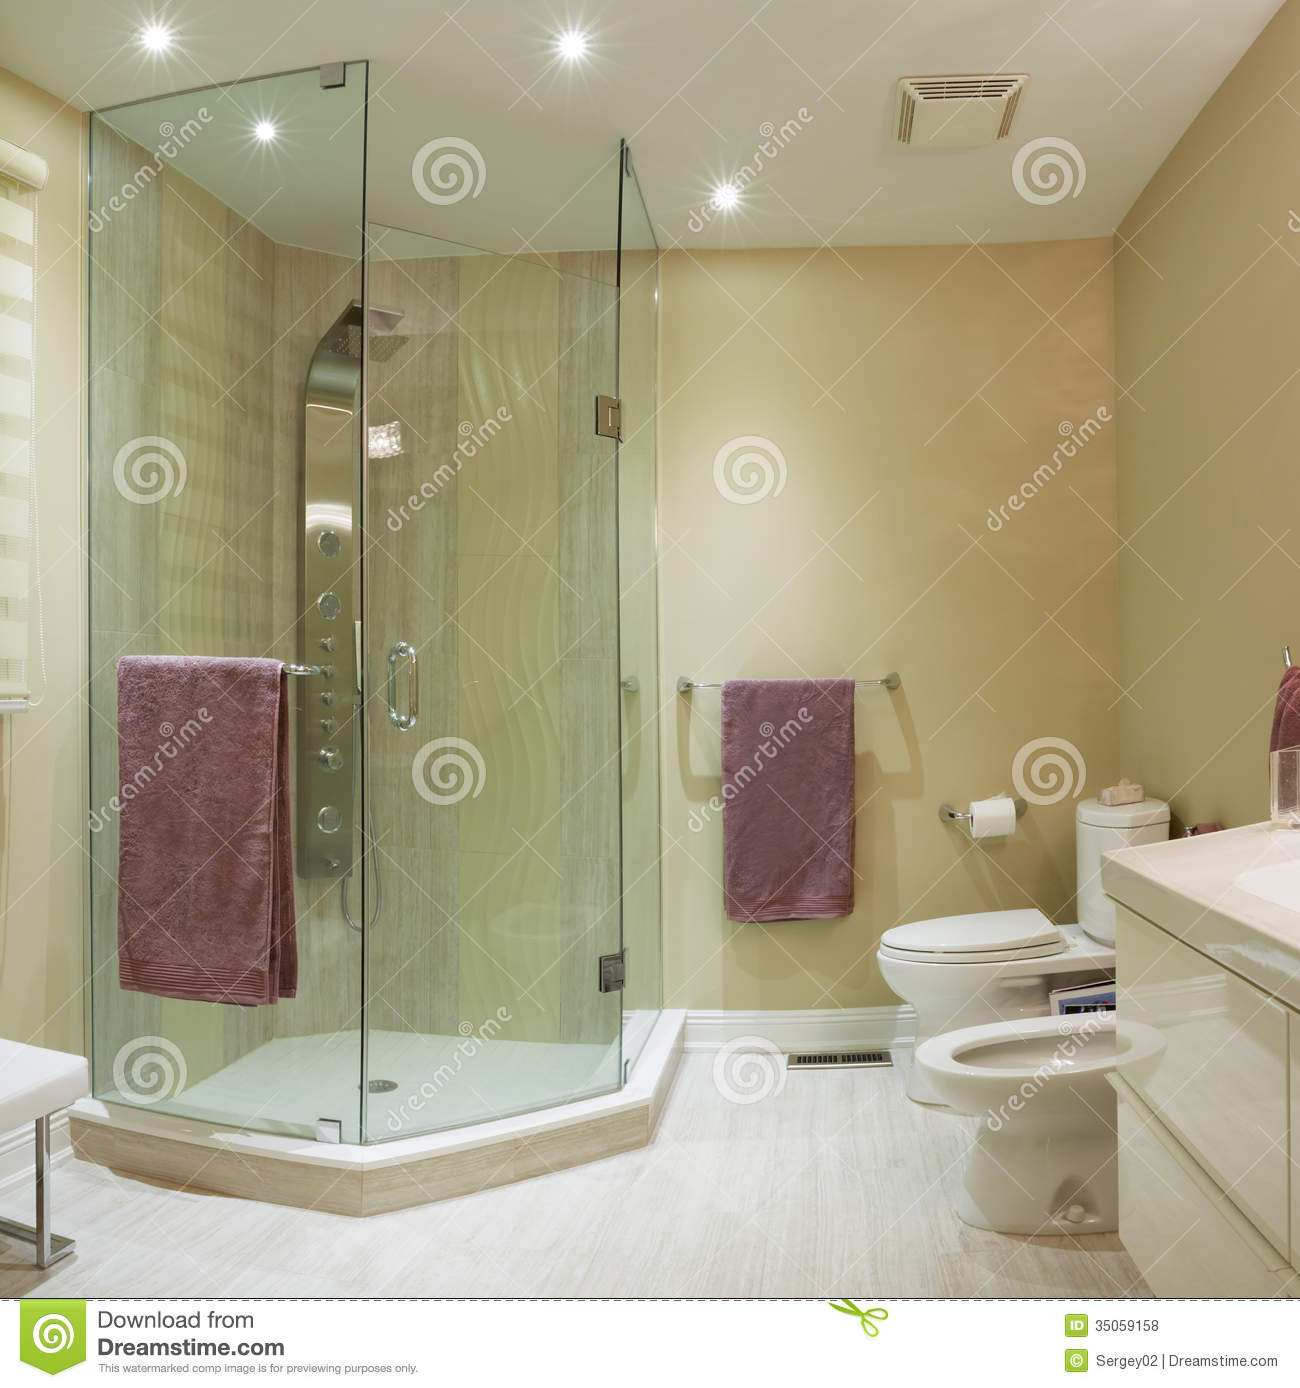 Interior Design Royalty Free Stock Photos - Image: 35059158